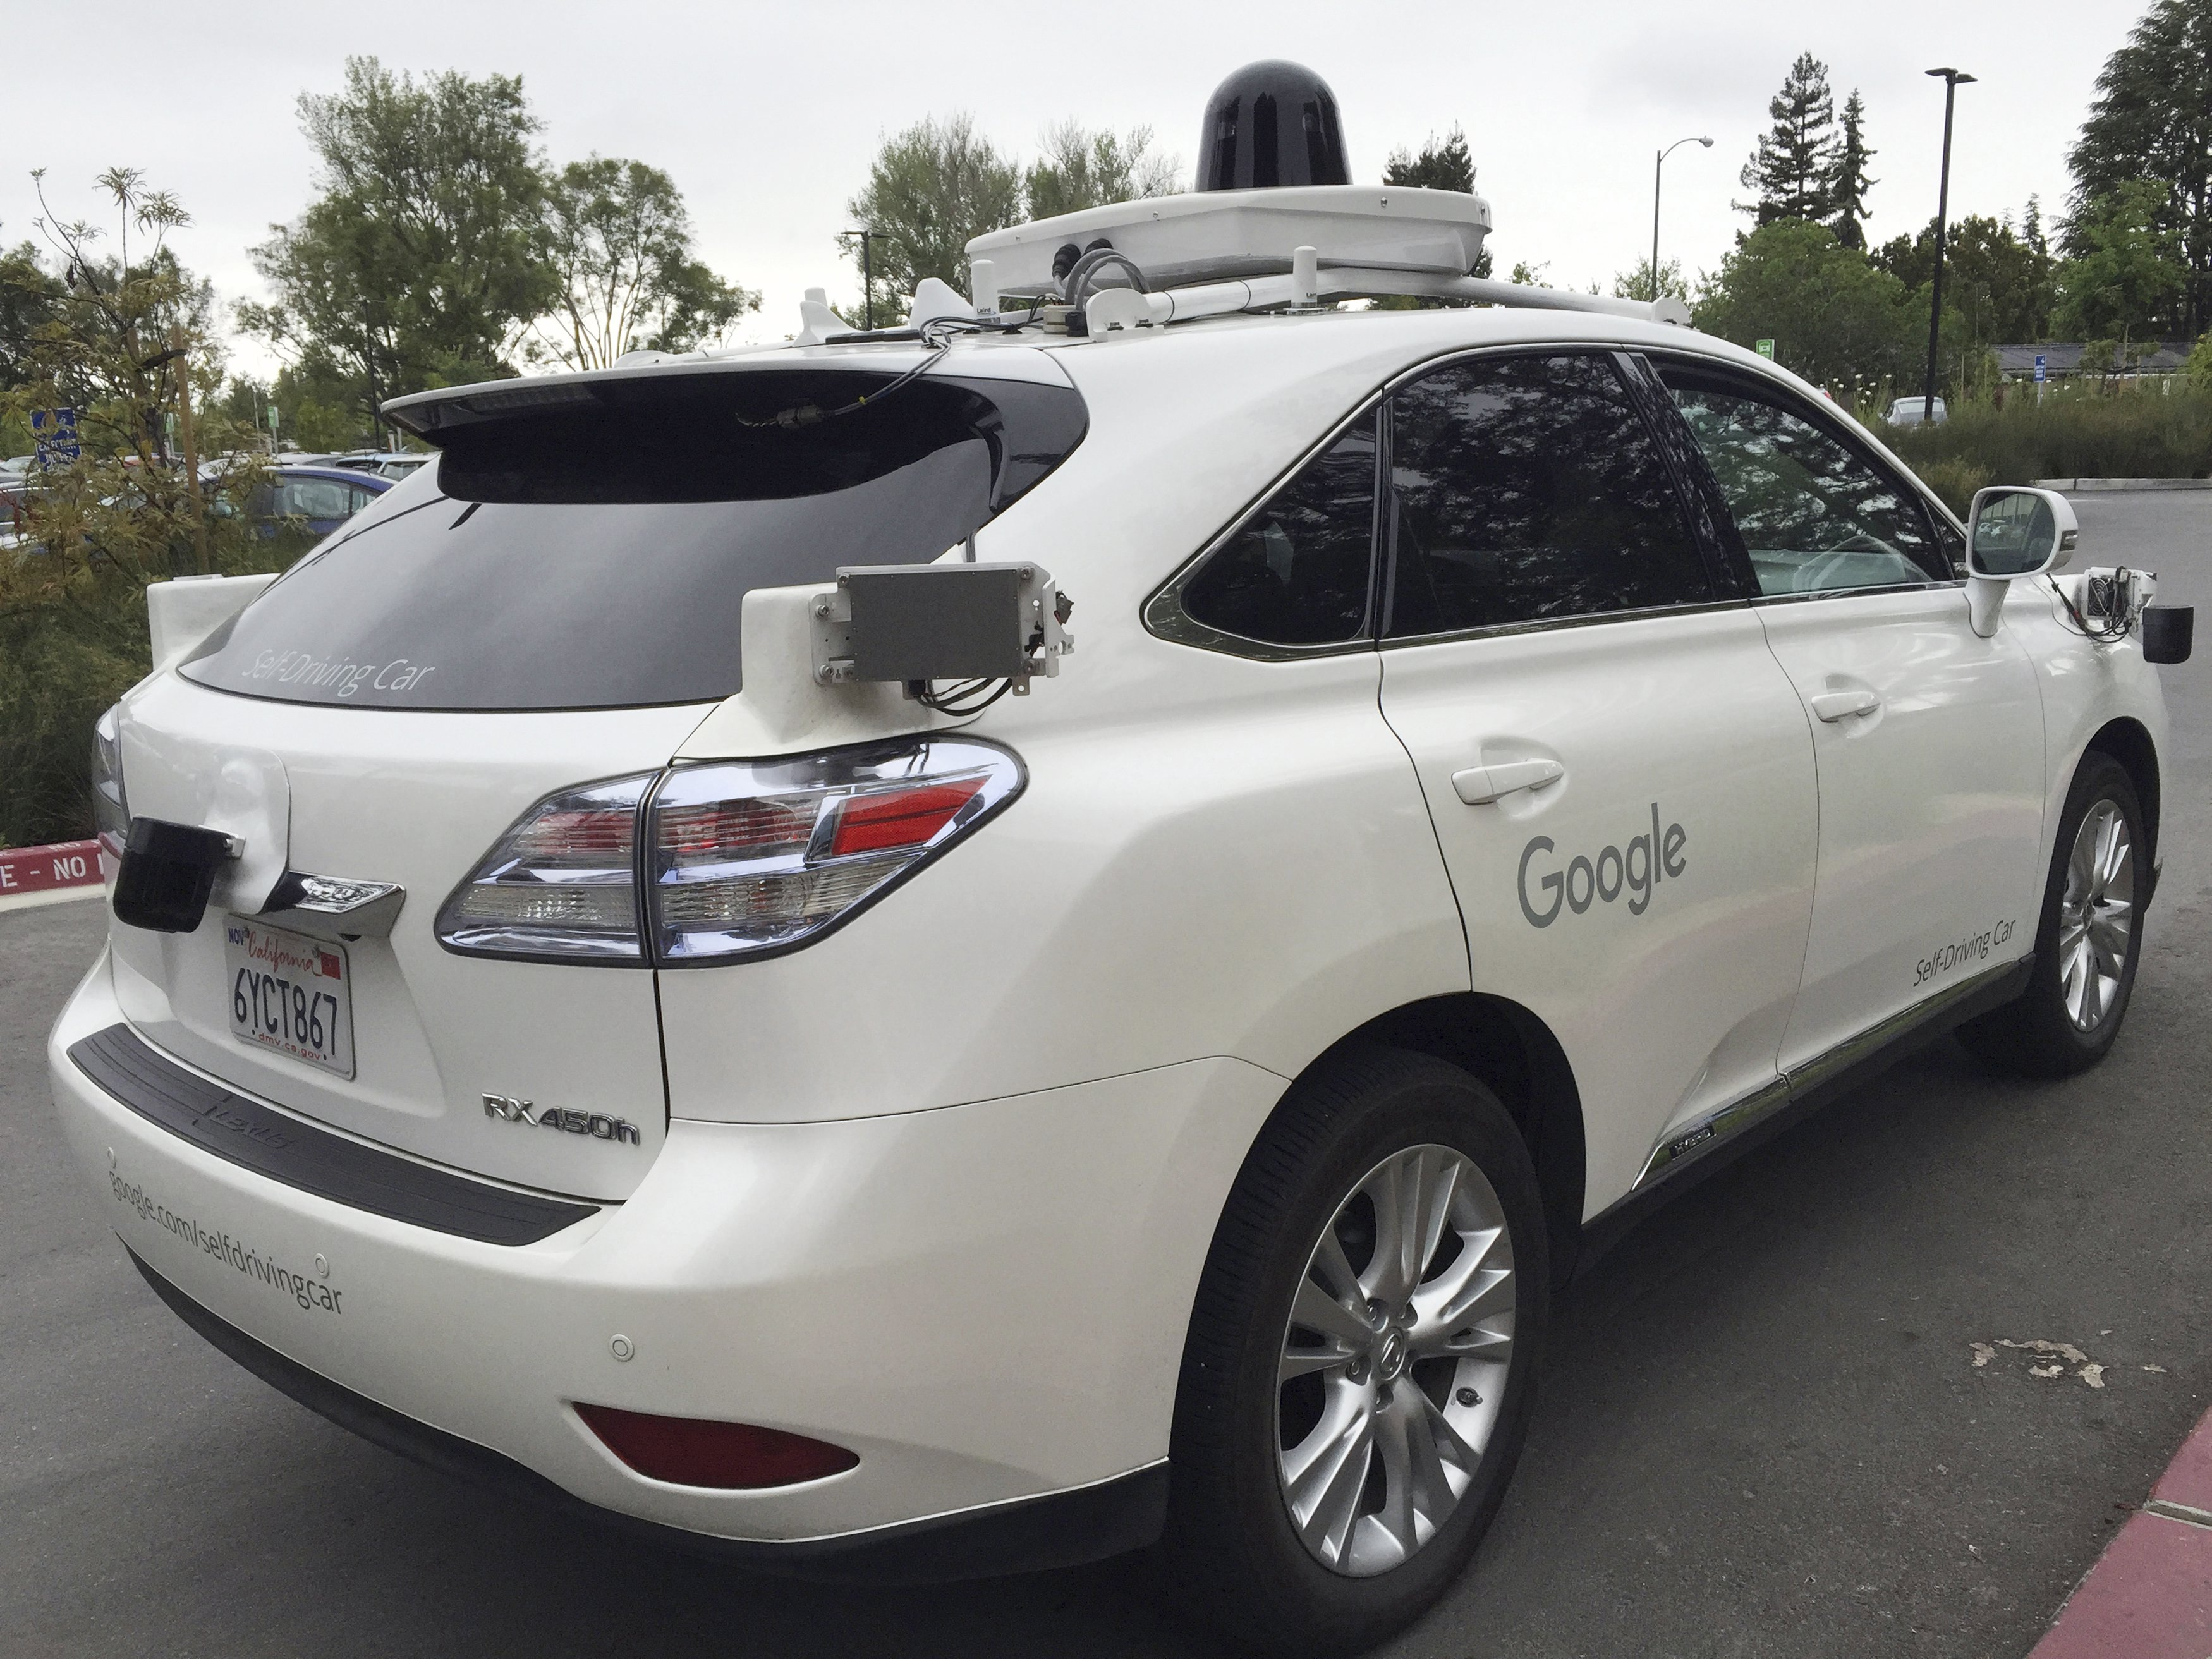 A Lexus version of a Google Self Driving car is shown in Moutain View, California, U.S., April 8, 2016. REUTERS/Alexandria Sage